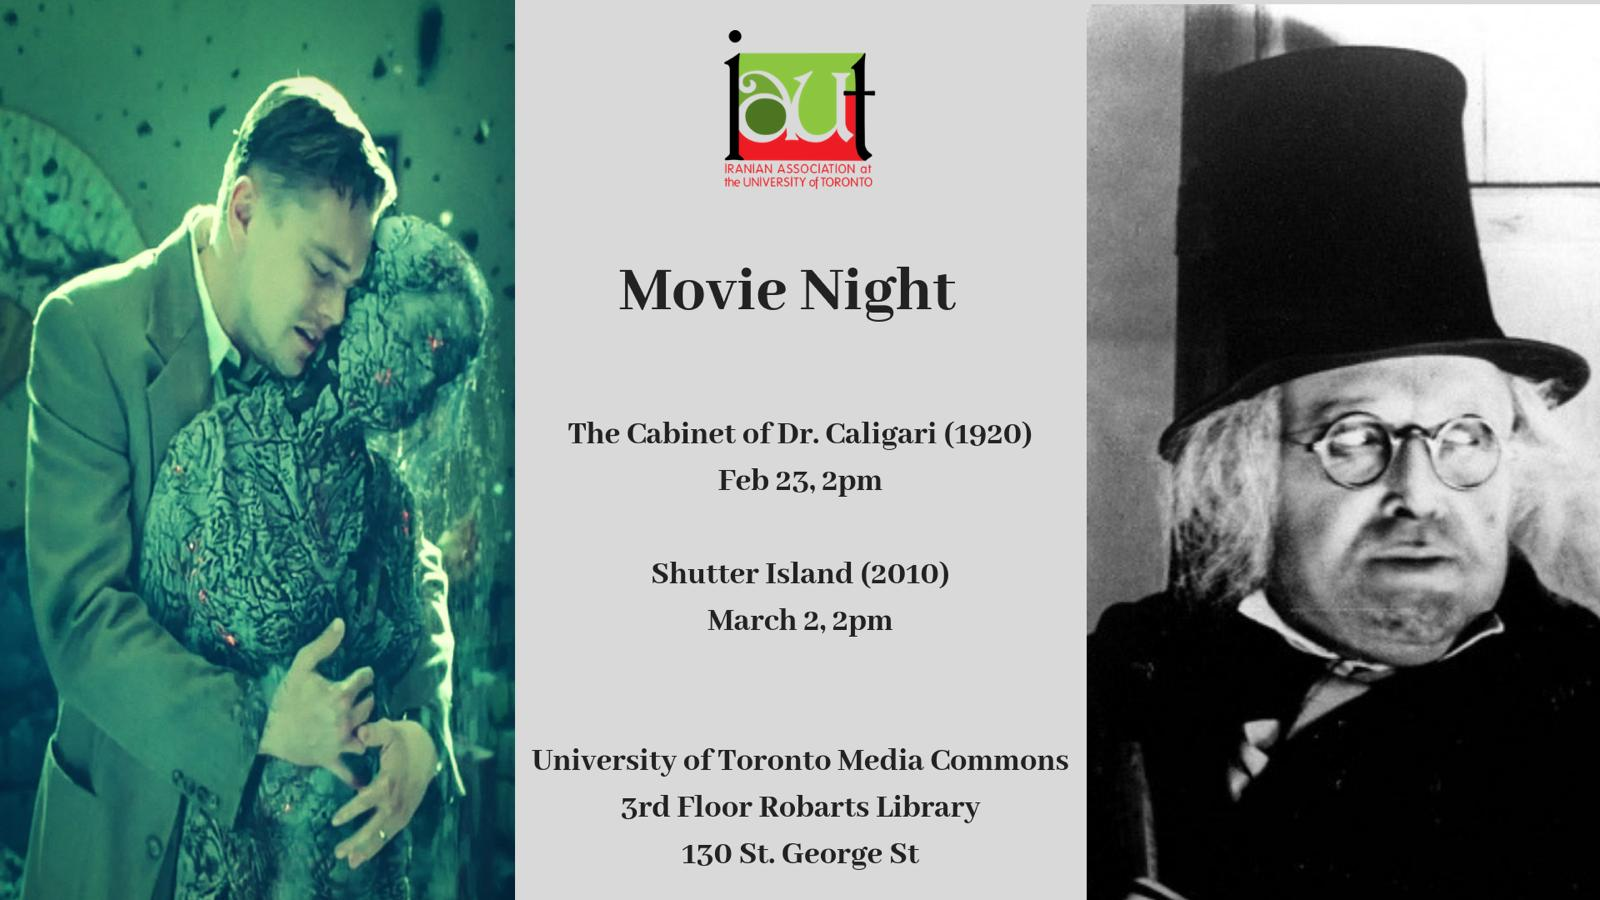 IAUT Movie Night: The Cabinet of Dr. Caligari and Shutter Island